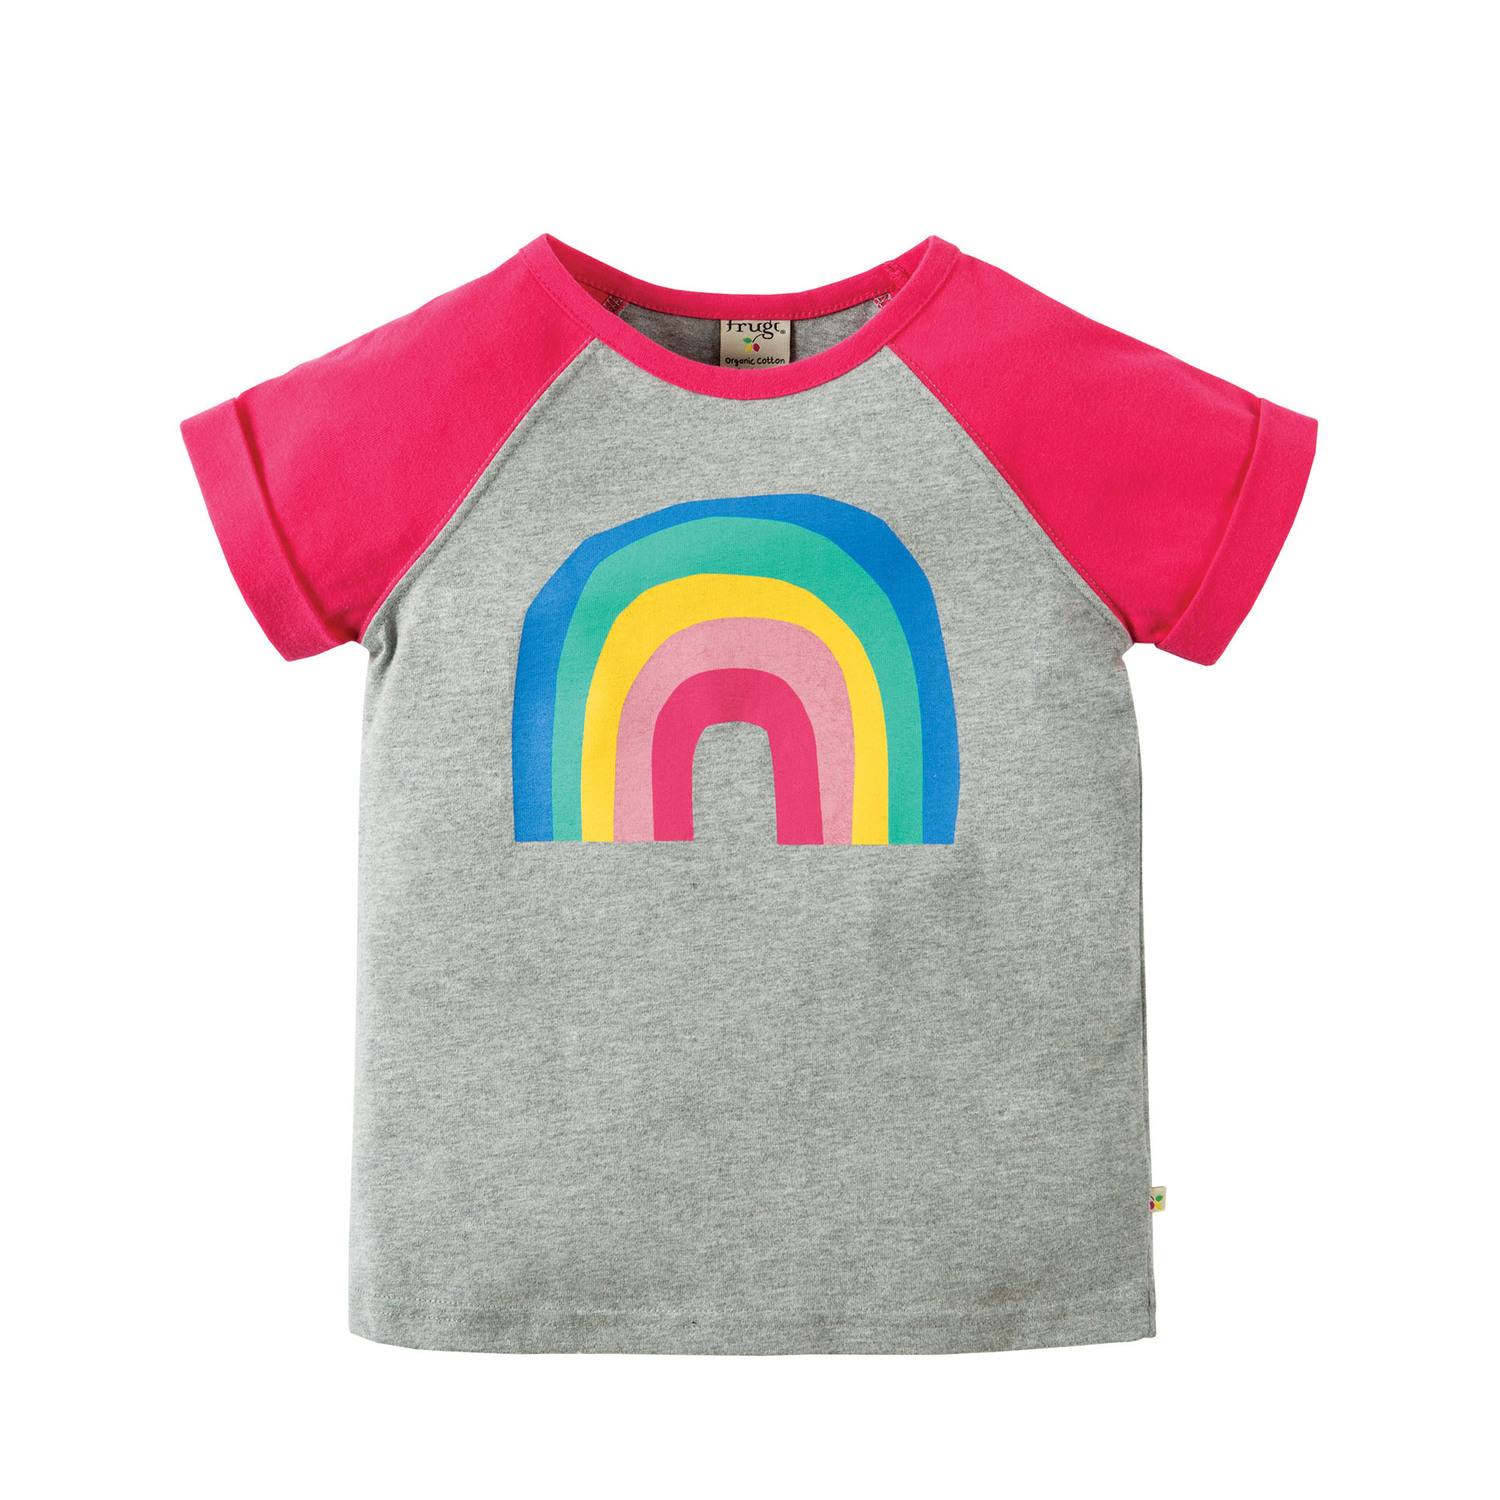 t shirt regenbogen von frugi 2 3 jahre kleinkind. Black Bedroom Furniture Sets. Home Design Ideas